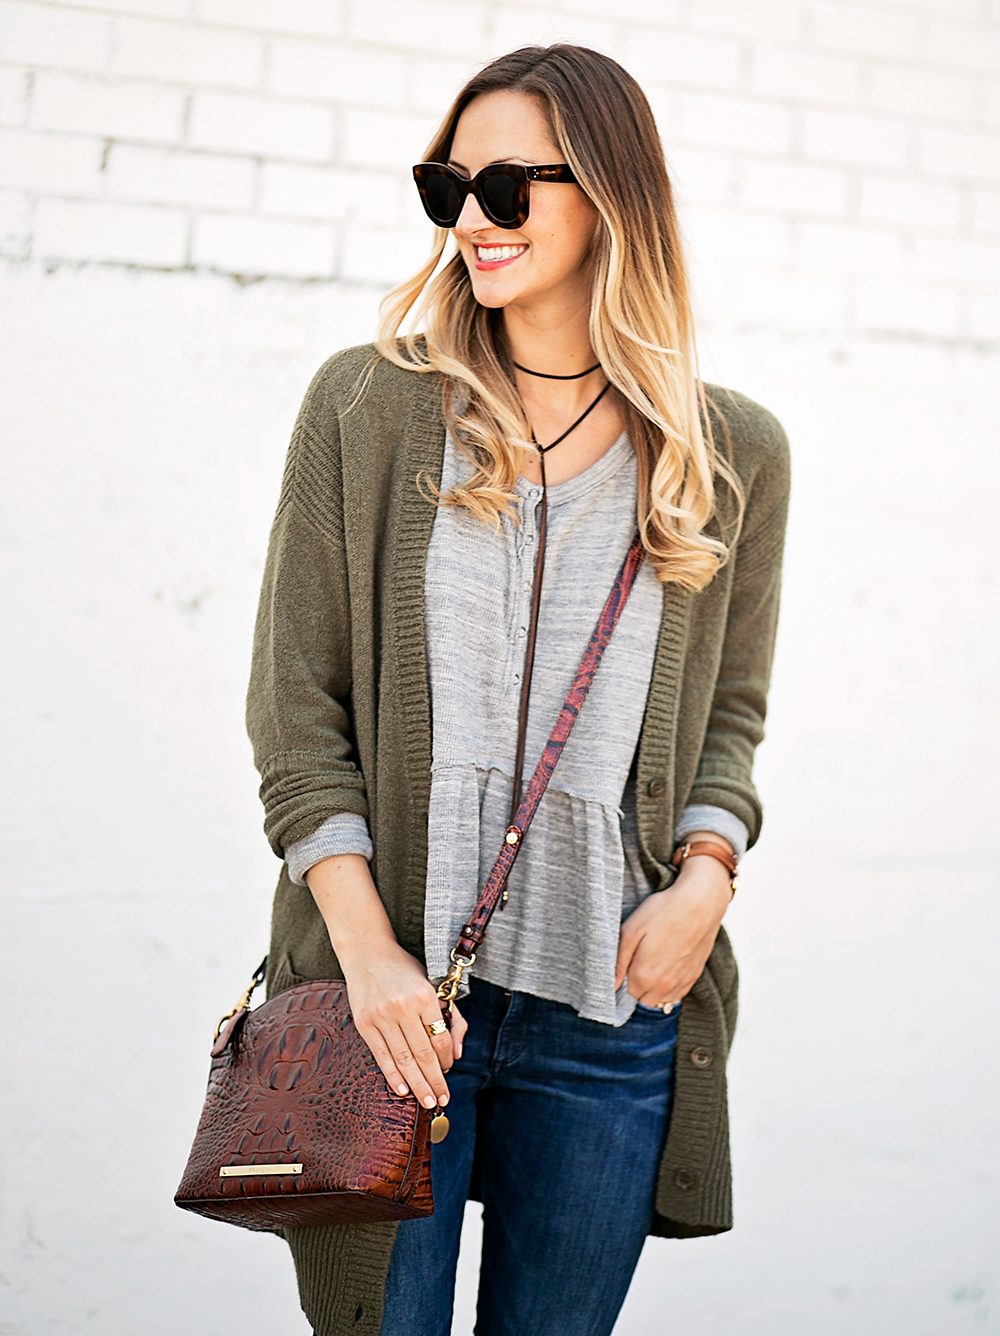 livvyland-blog-olivia-watson-peplum-thermal-tee-shirt-olive-cardigan-boho-outfit-casual-taupe-ankle-booties-fall-outfit-idea-celine-baby-marta-sunglasses-9